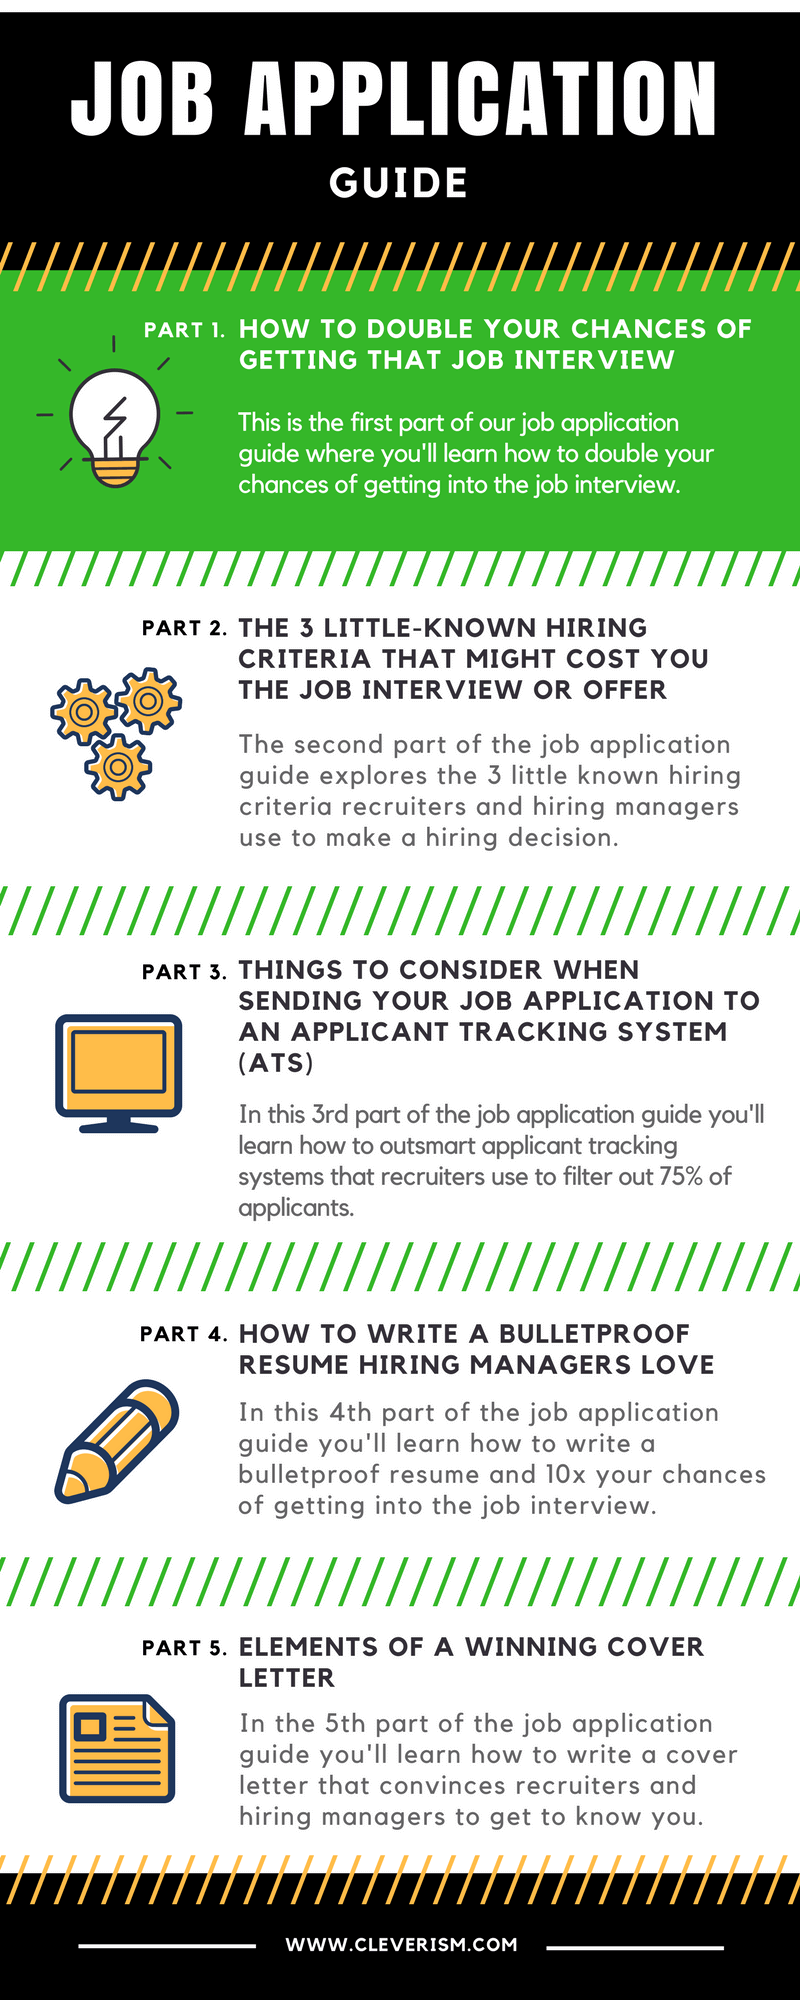 How To Double Your Chances Of Getting That Job Interview